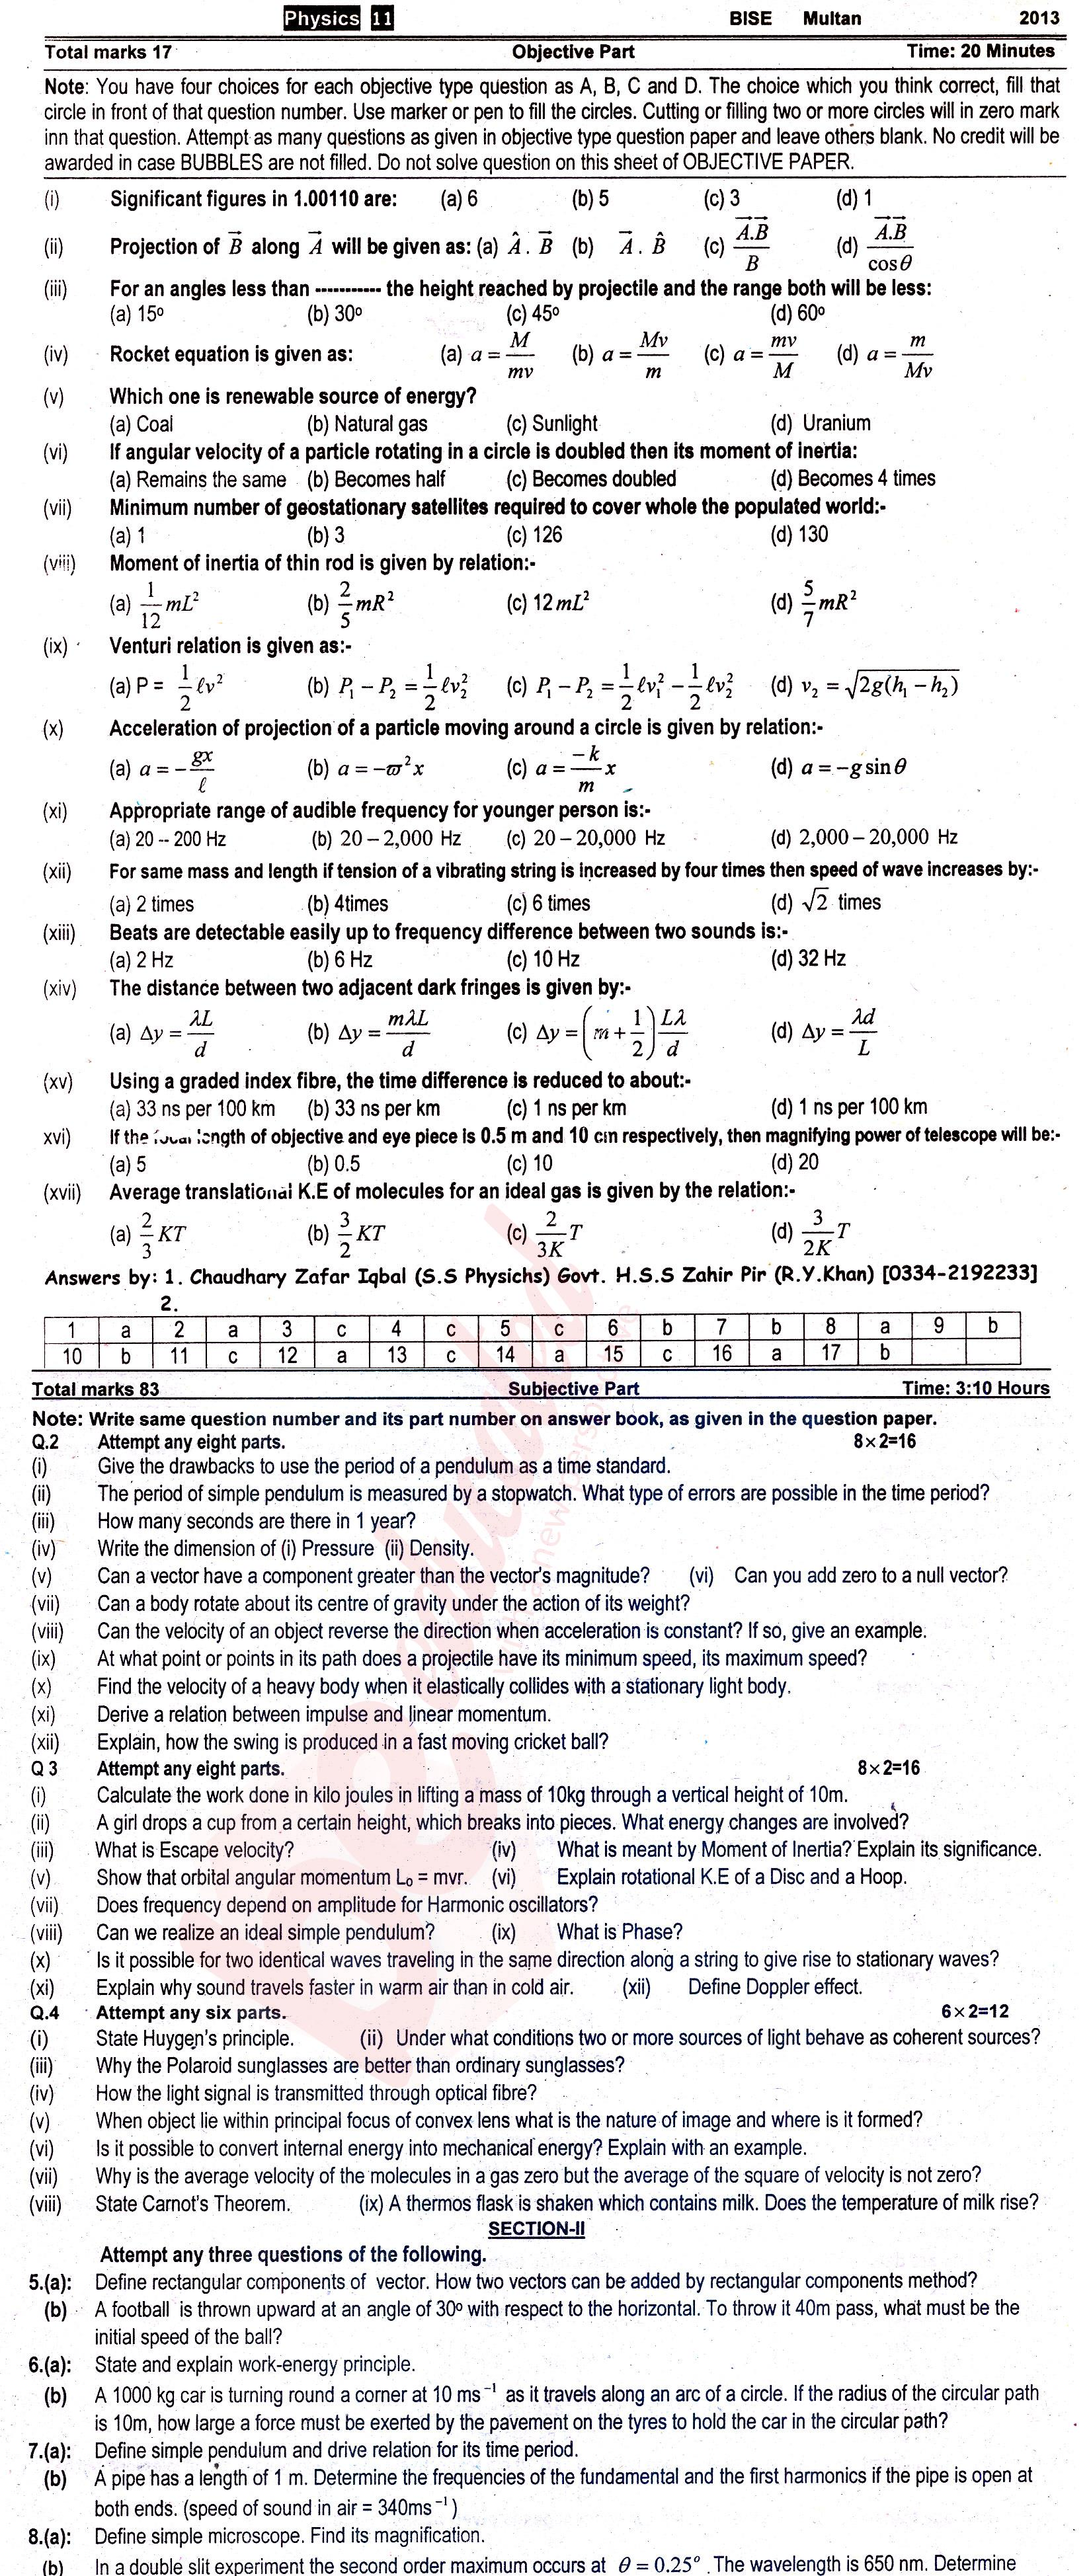 physics in the past Physics paper 1 - free download as word doc (doc / docx), pdf file (pdf), text file (txt) or read online for free.